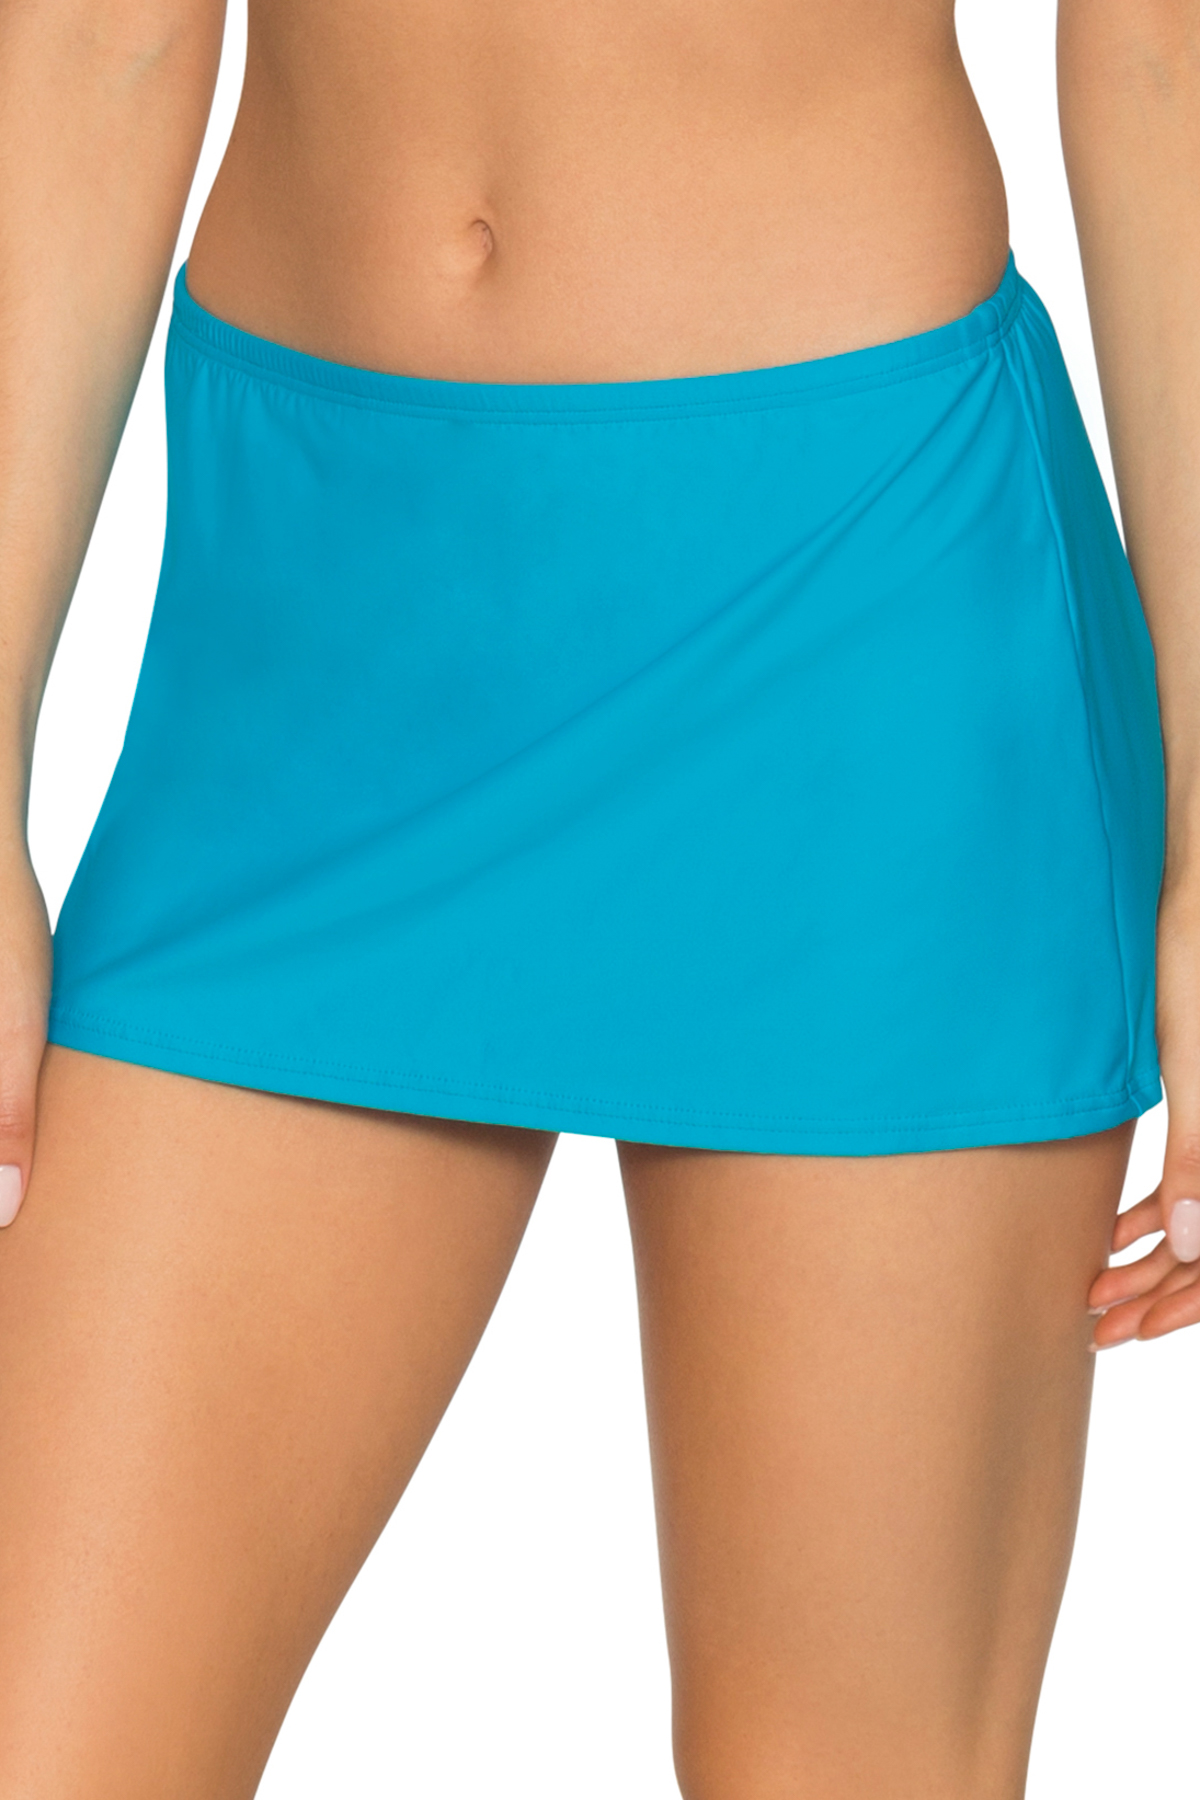 Kokomo Contemporary Skirted Bikini Bottom - Poolside Blue 1